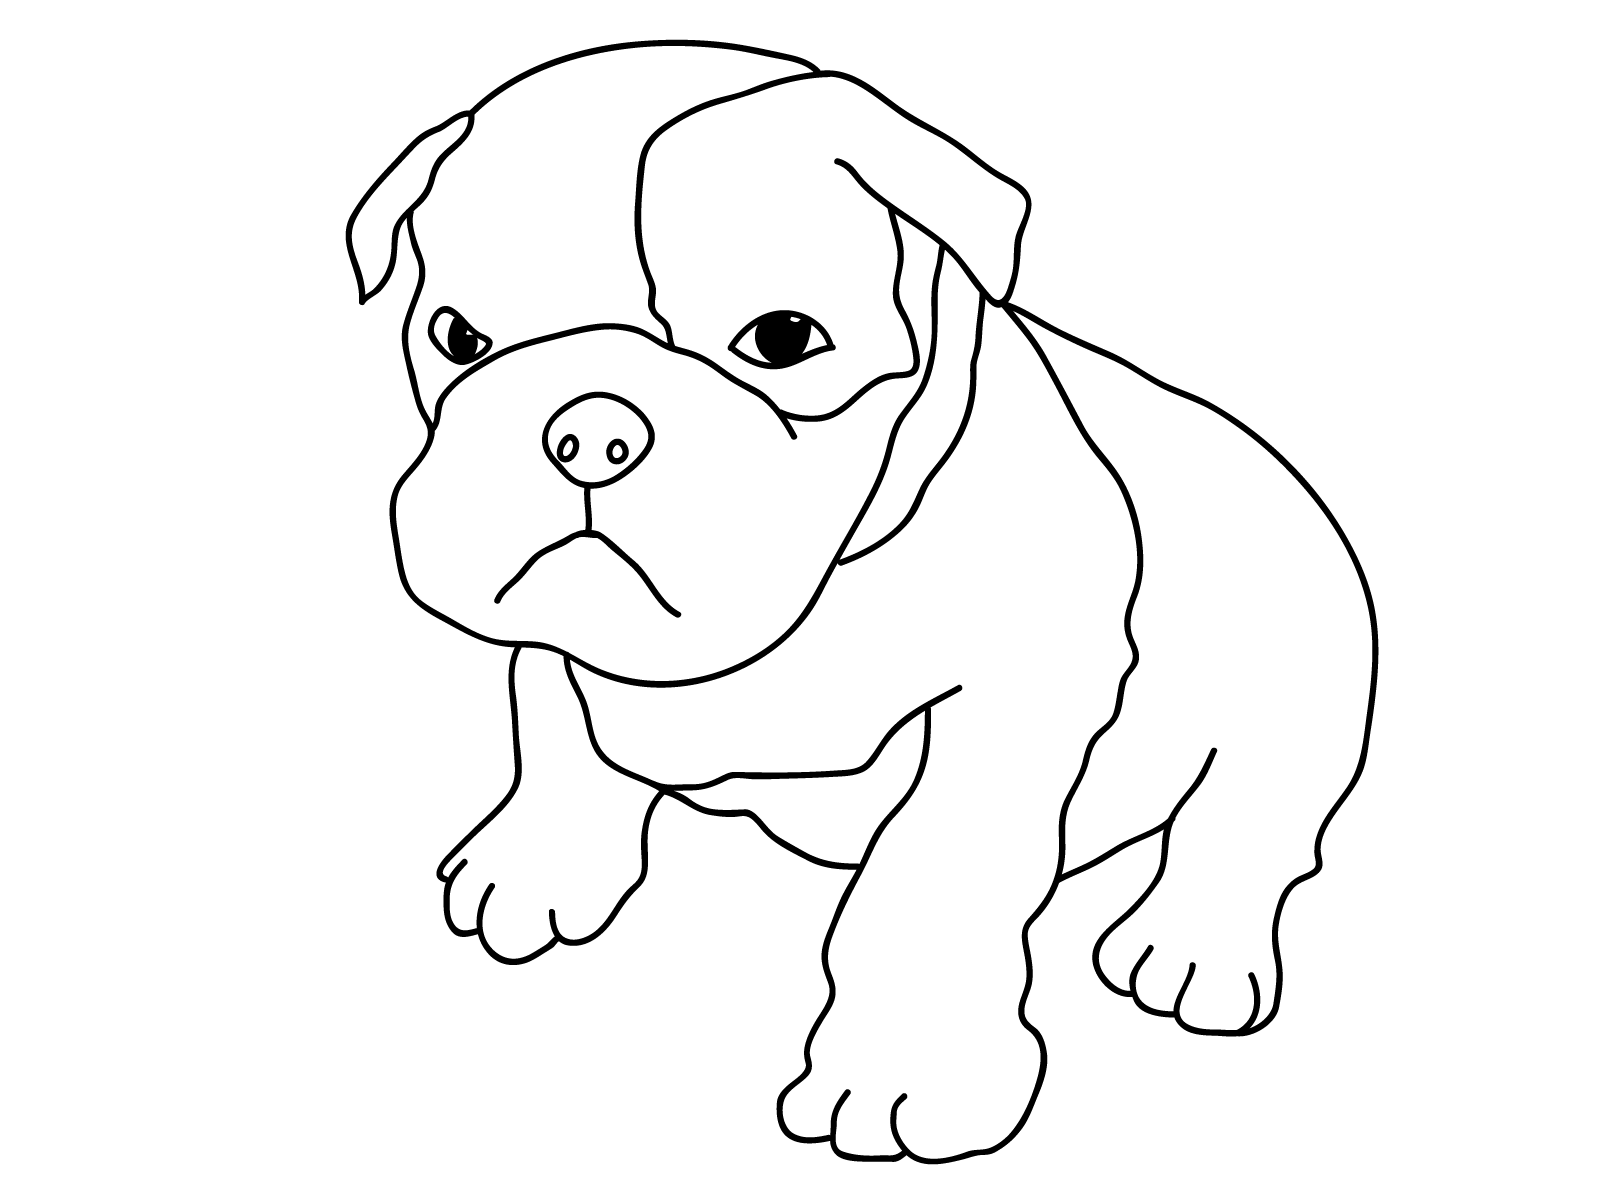 colouring pages of a dog dog coloring pages 2018 dr odd of colouring dog pages a